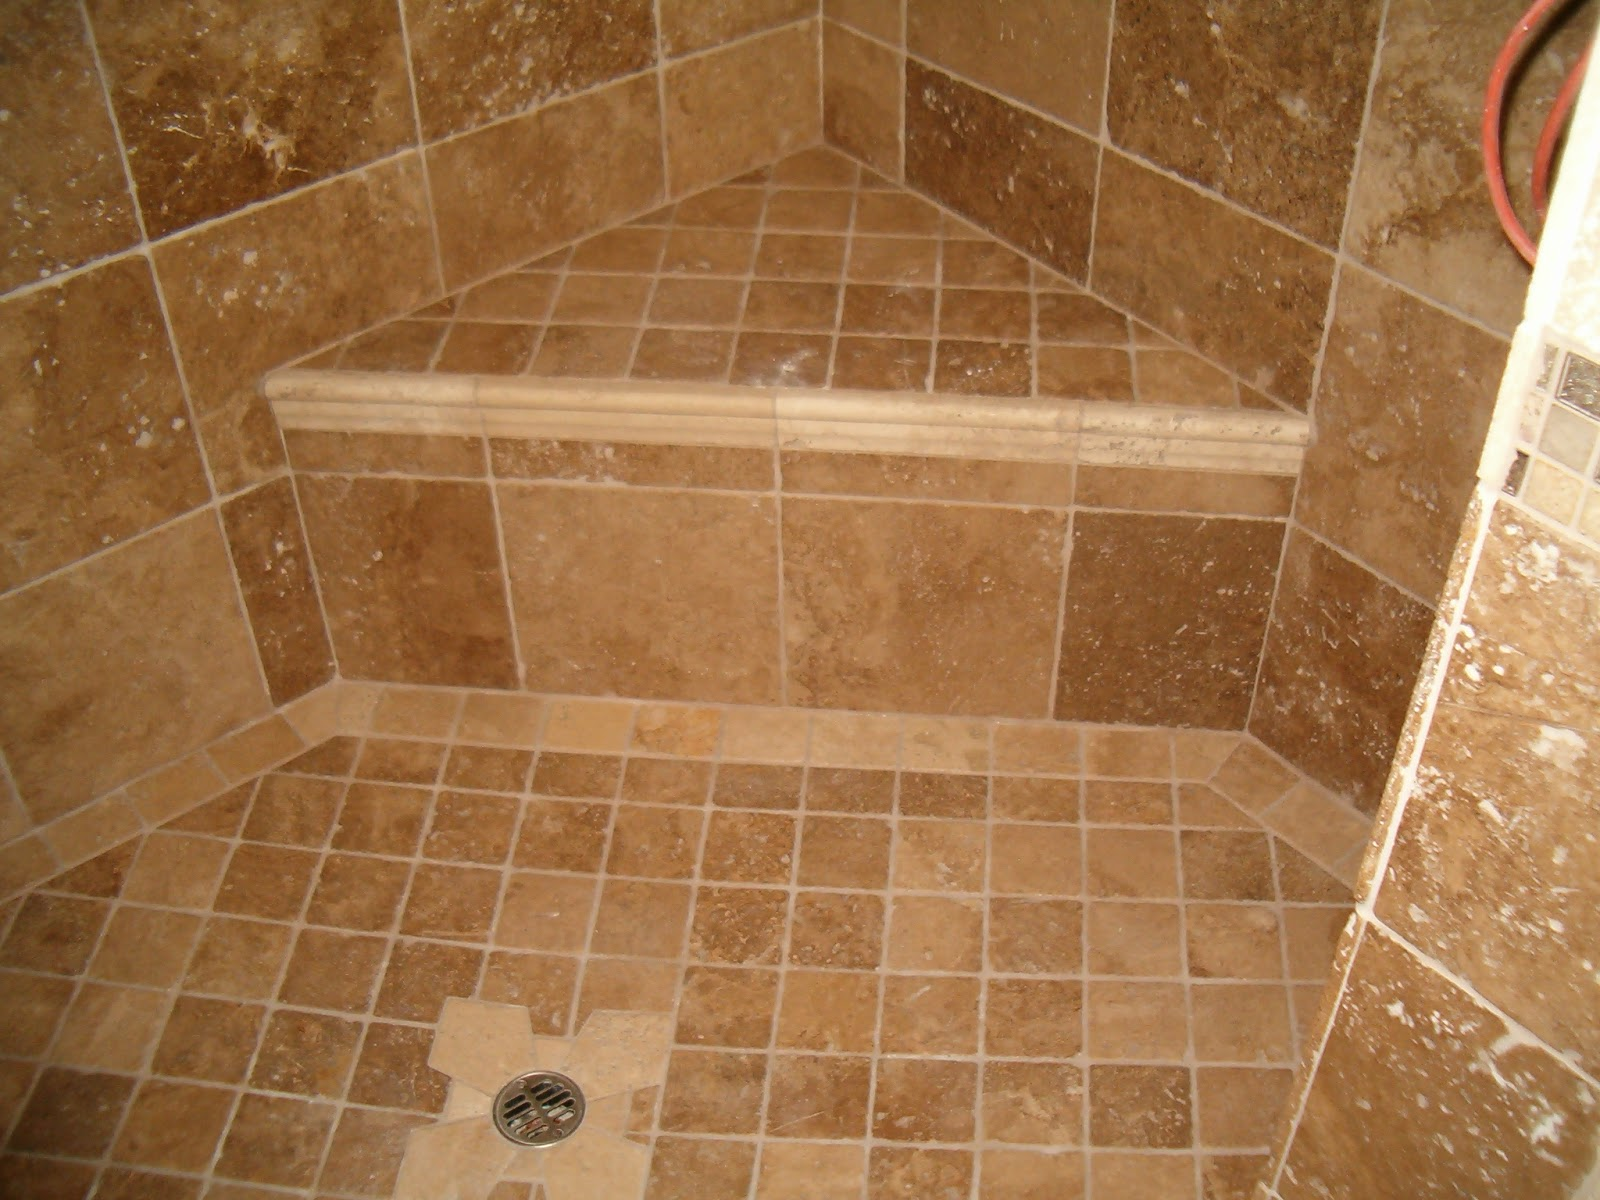 Tiling bathroom shower - large and beautiful photos. Photo to select on re tiling a bathroom shower, diy tiling a bathroom shower, building a bathroom shower, grouting tile shower,